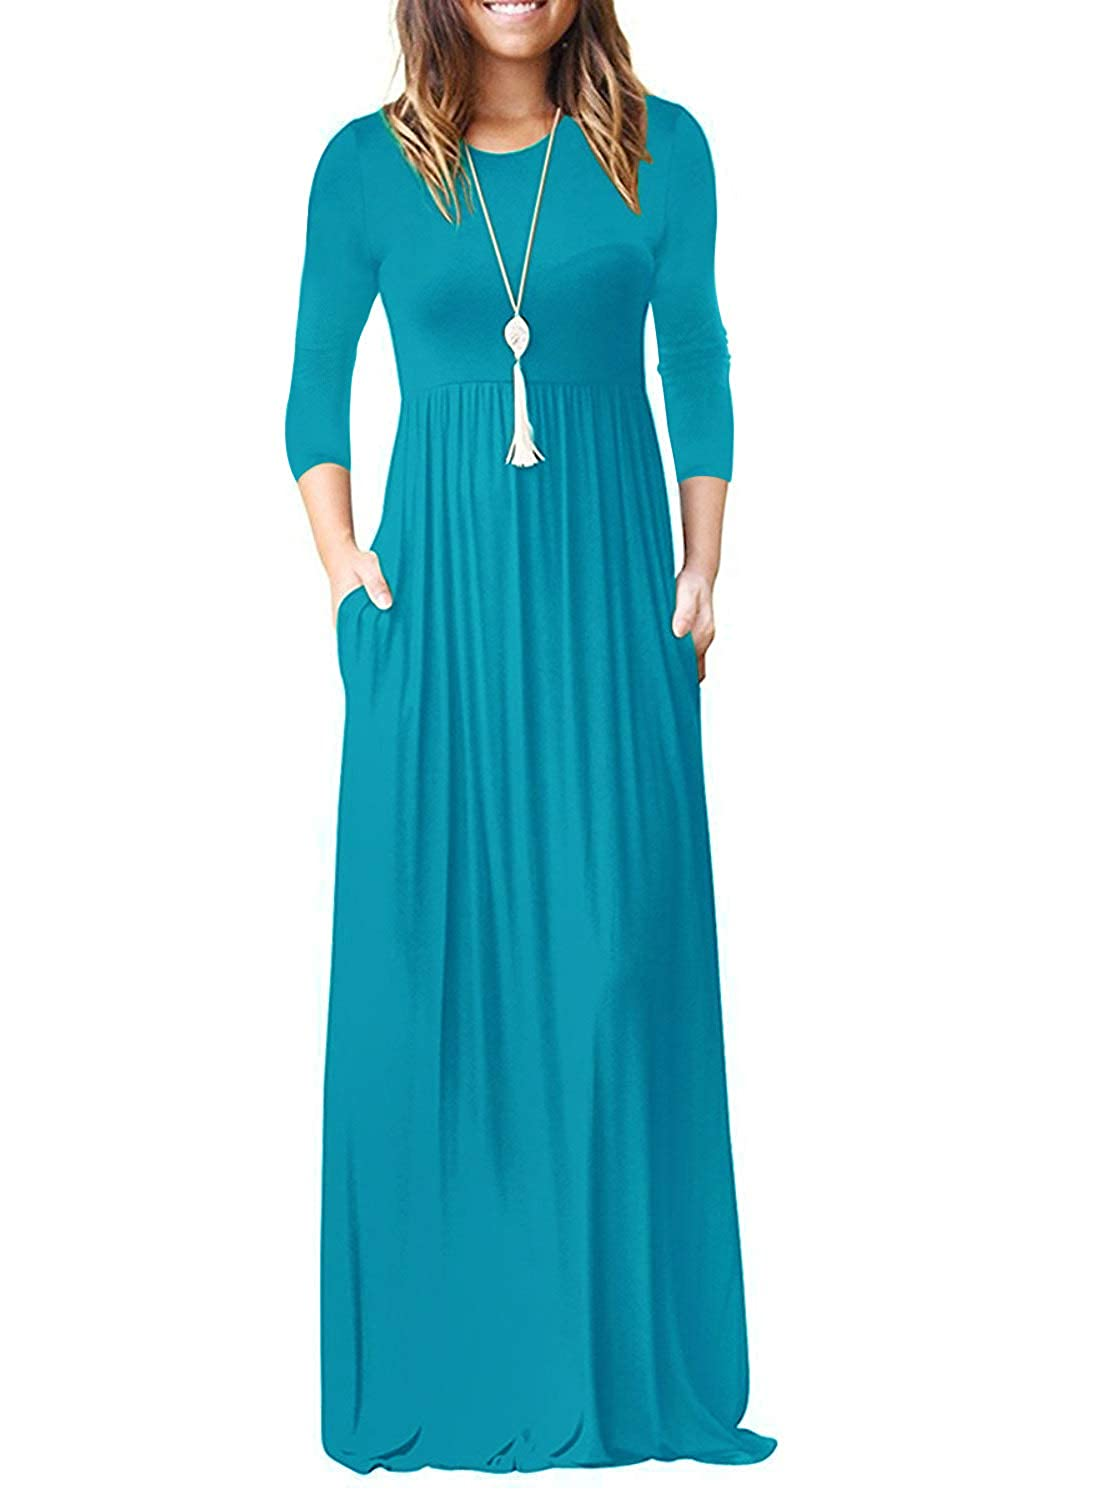 79fe1f194d2 Top 10 wholesale Best Long Maxi Dresses - Chinabrands.com